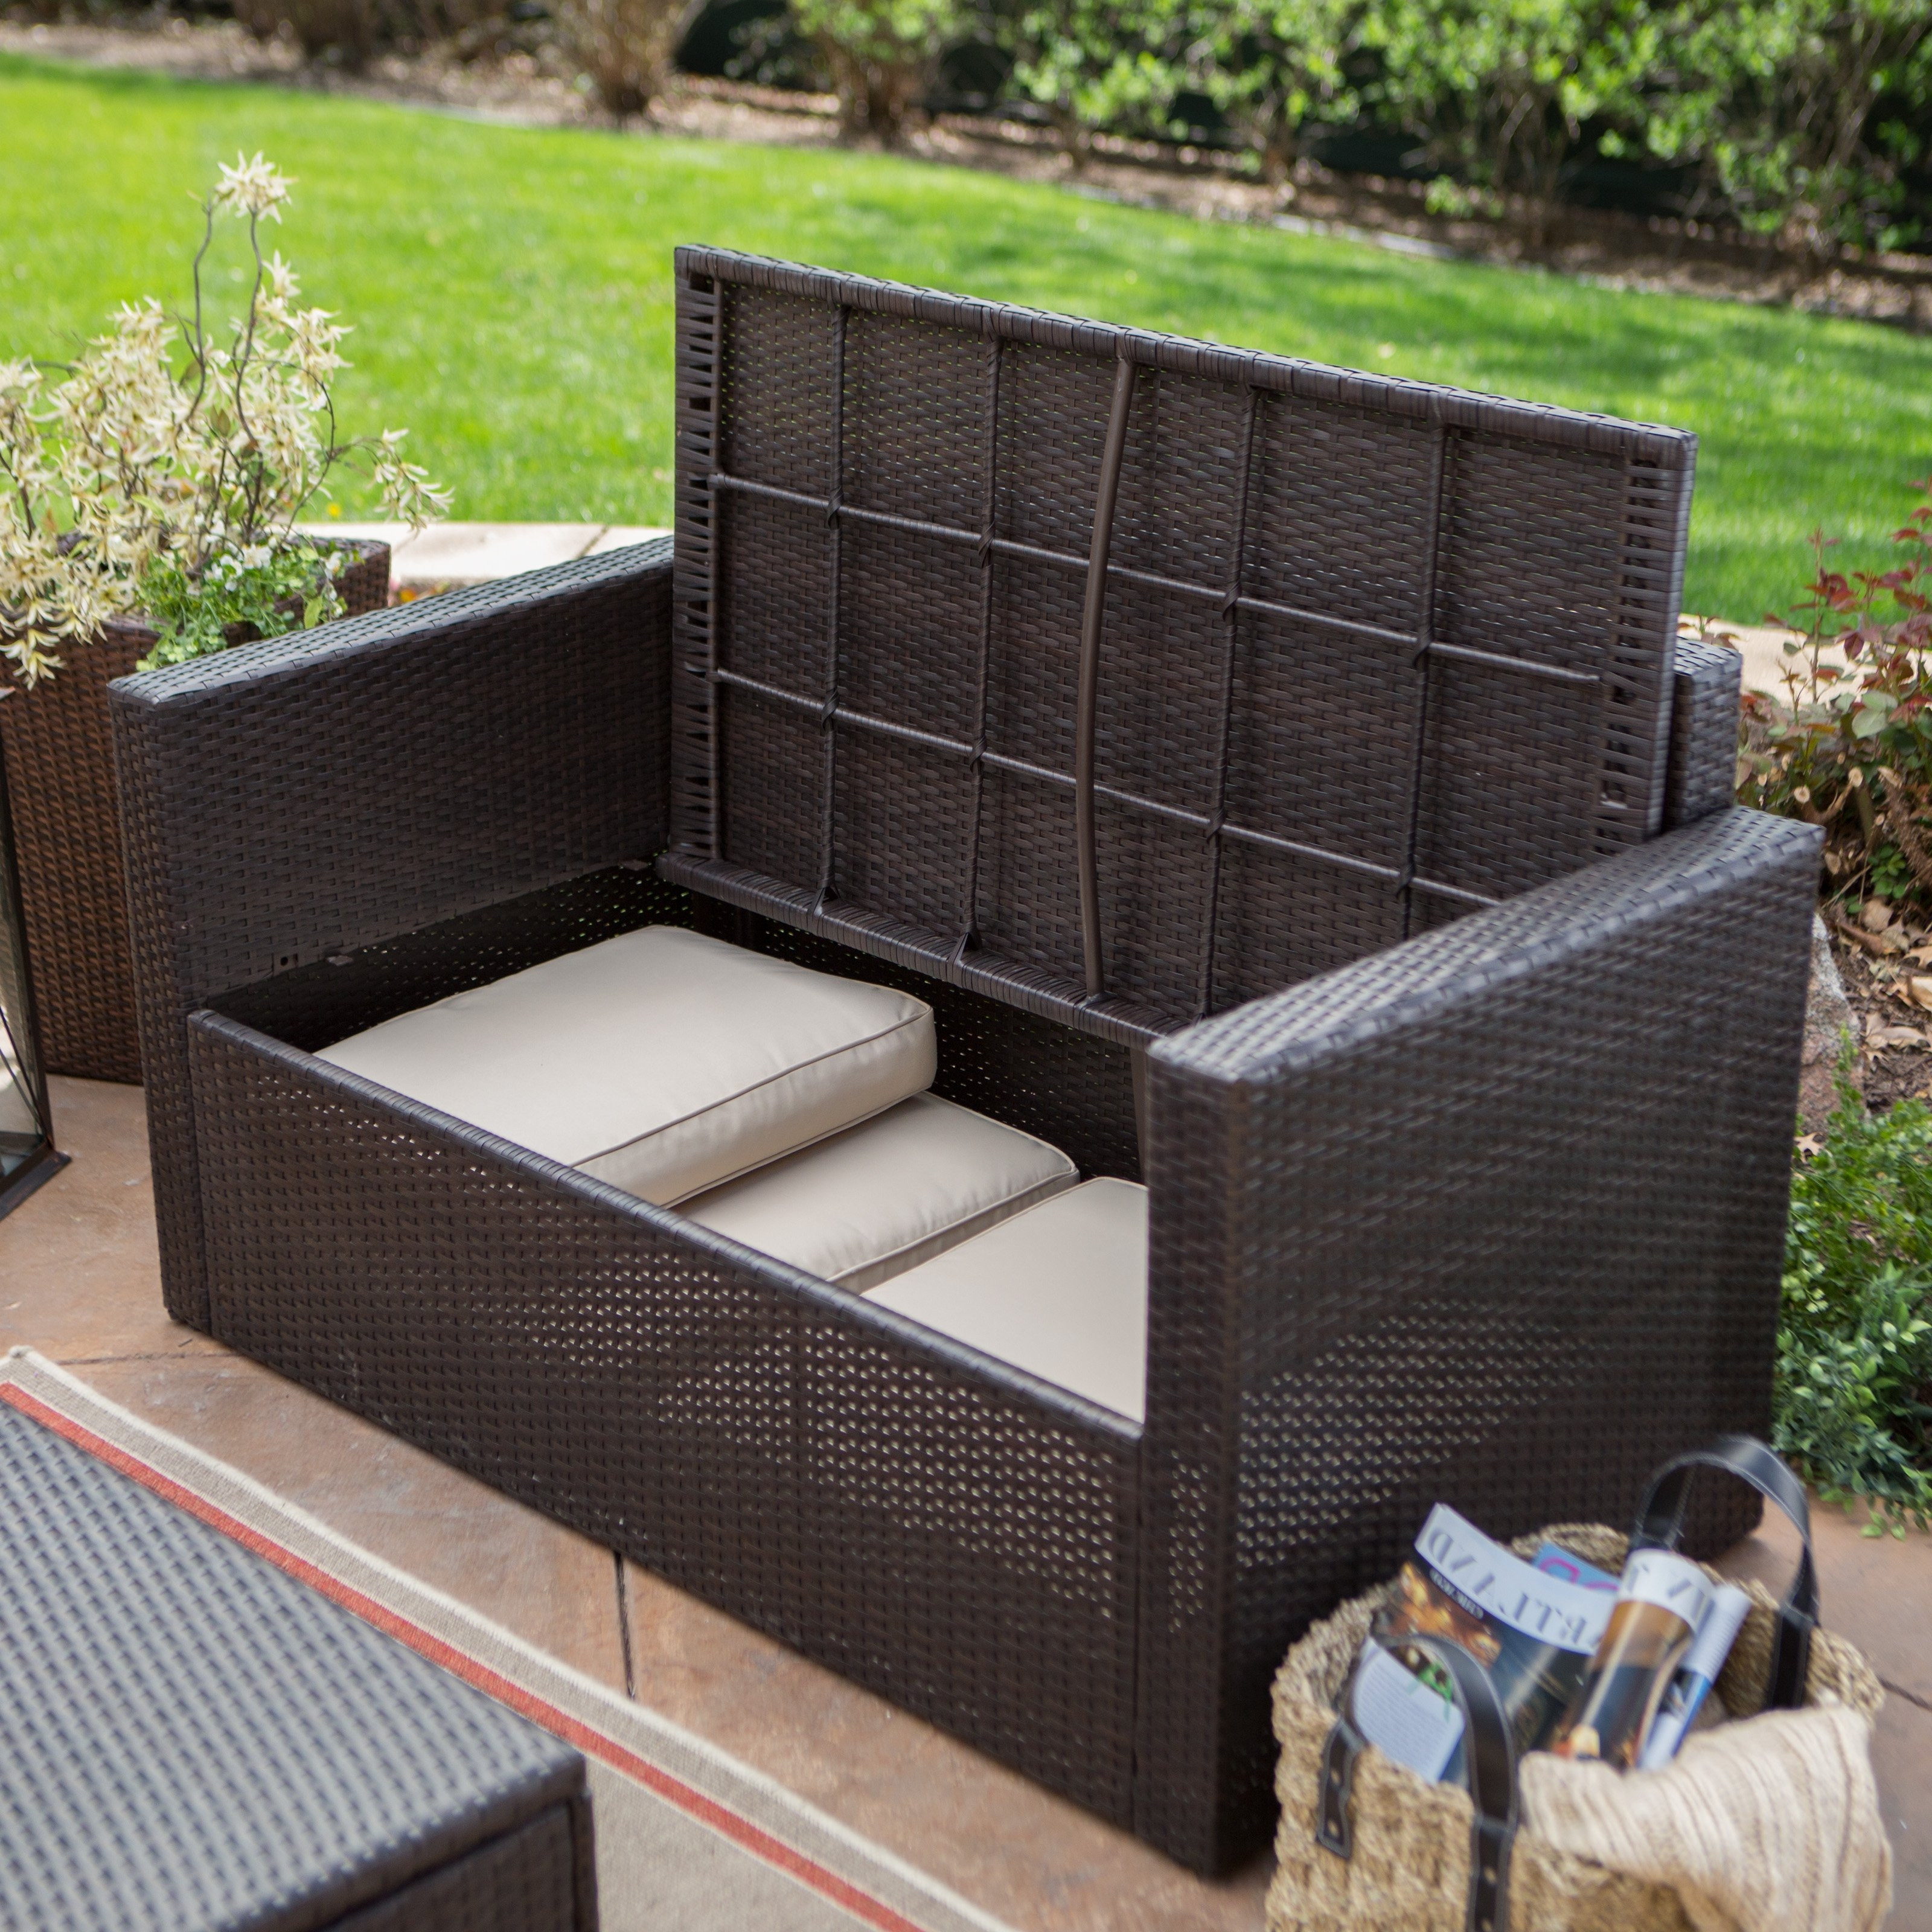 Patio Conversation Sets With Storage For Well Liked Coral Coast Berea Outdoor Wicker Storage Loveseat With Cushions (View 12 of 20)